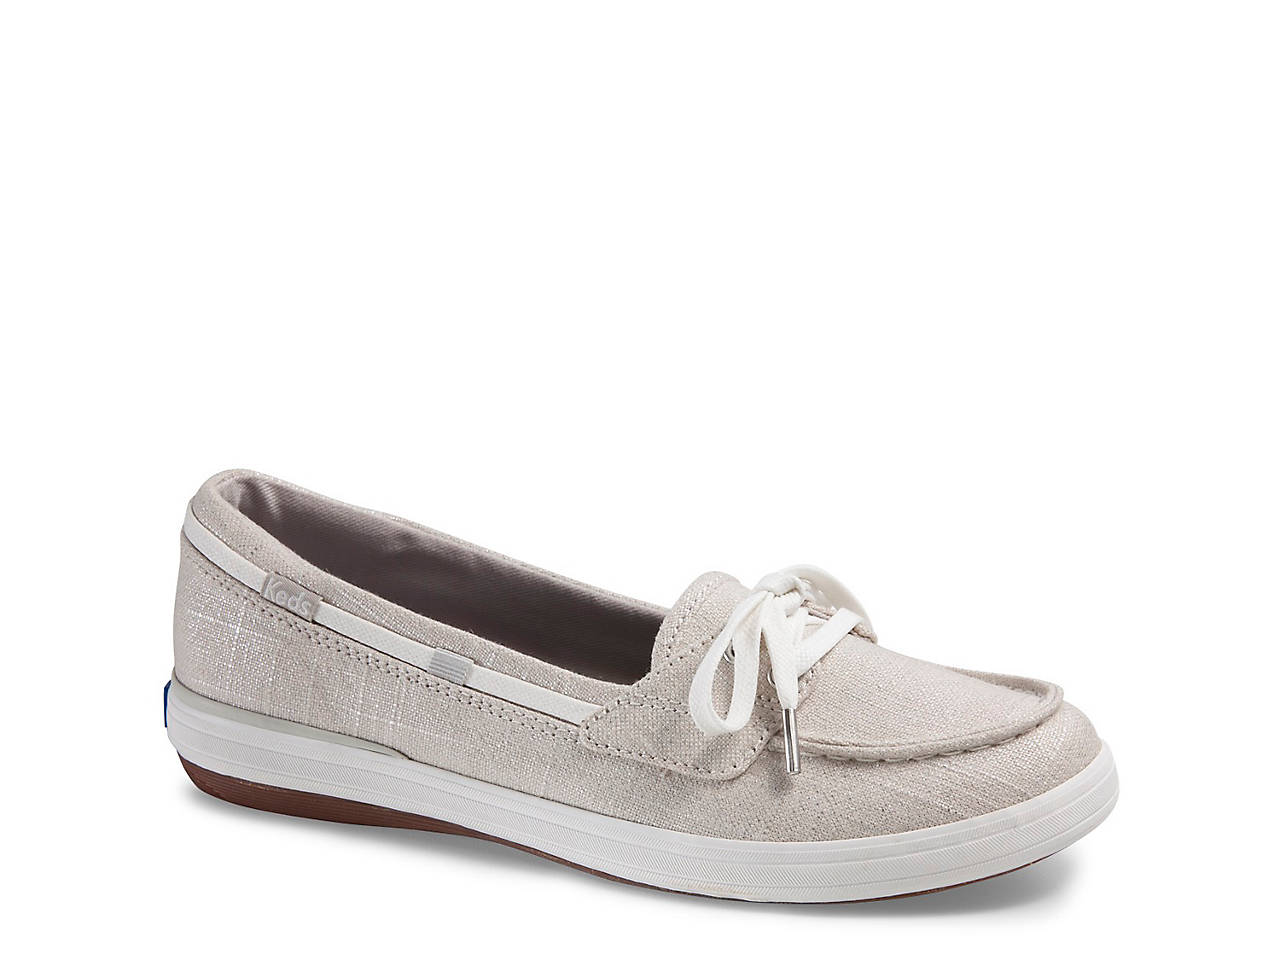 900ec6c9db Keds Glimmer Linen Slip-On Sneaker - Women's Women's Shoes | DSW